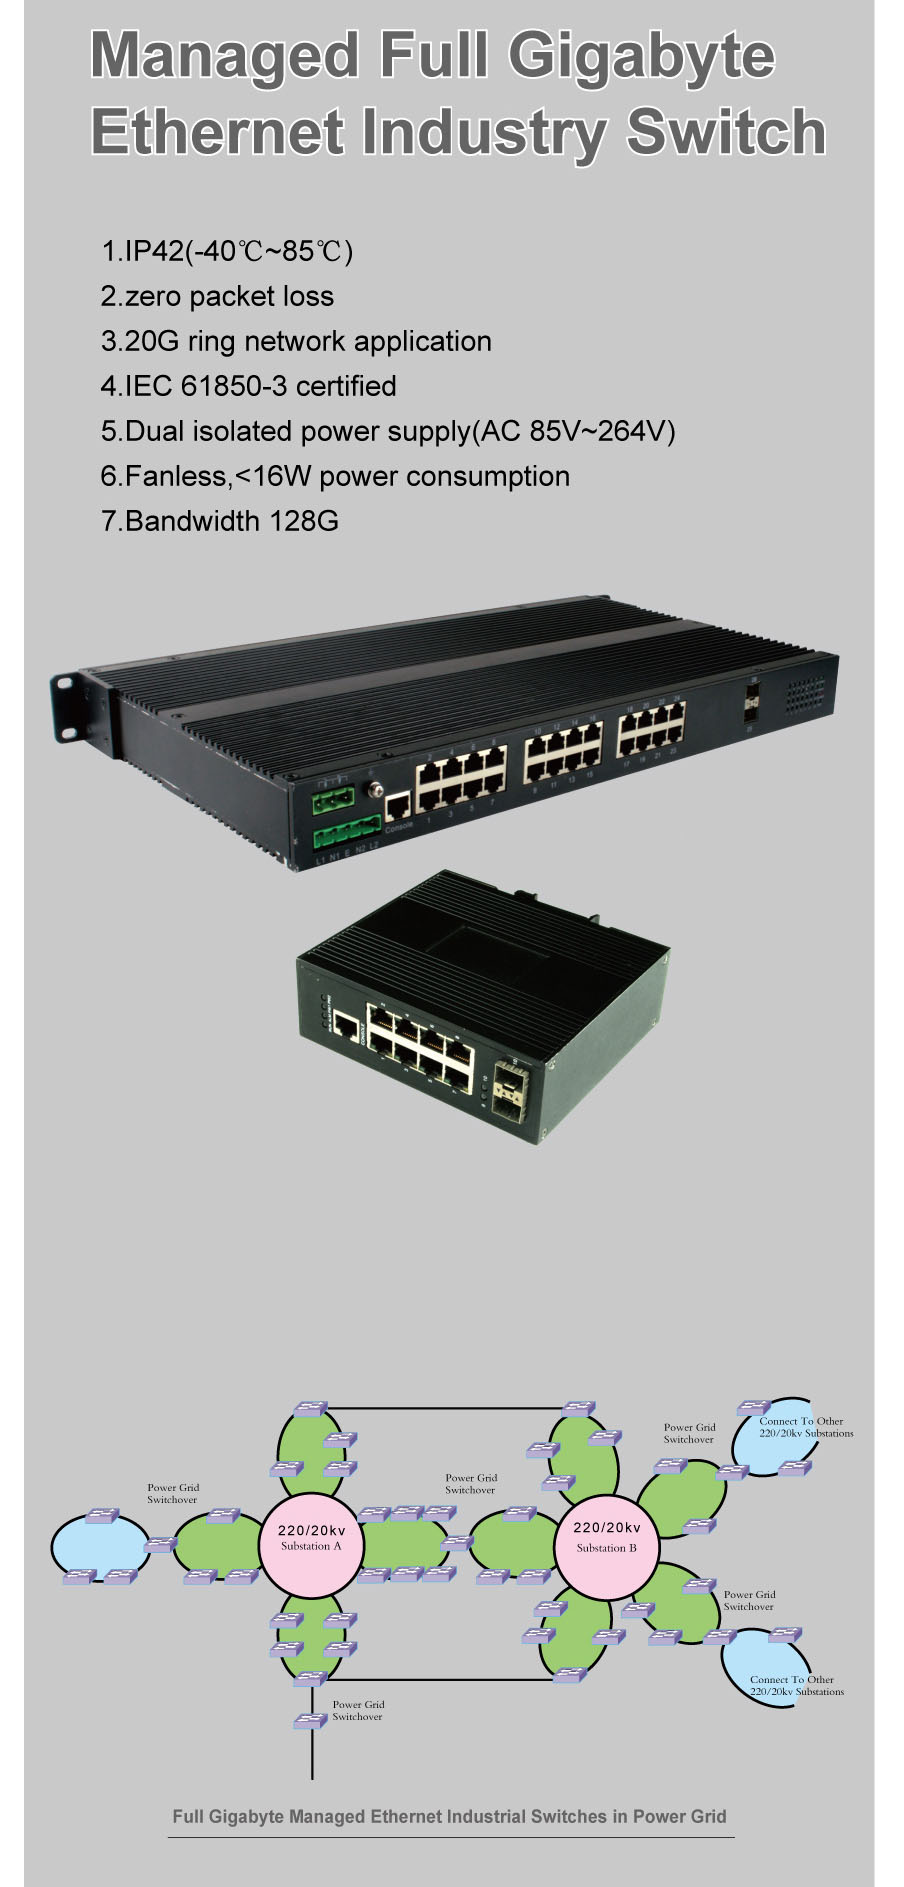 Managed Full Gigabyte Ethernet Industrial Switch